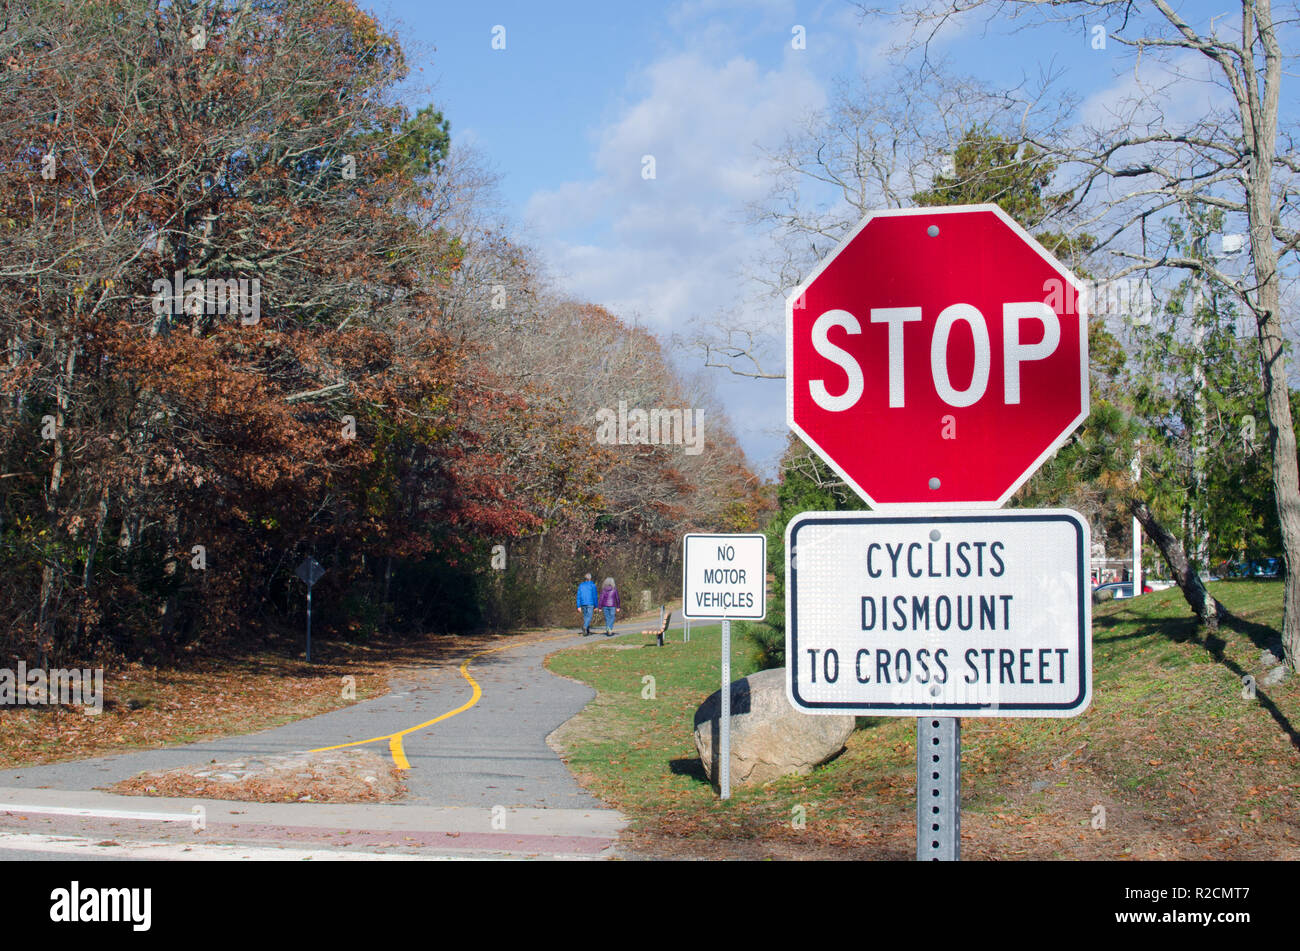 Shining Sea Bikeway sign with Stop sign, No Motor Vehicles sign and Cyclists Dismount to Cross Street in Falmouth, Cape Cod, Massachusetts USA - Stock Image